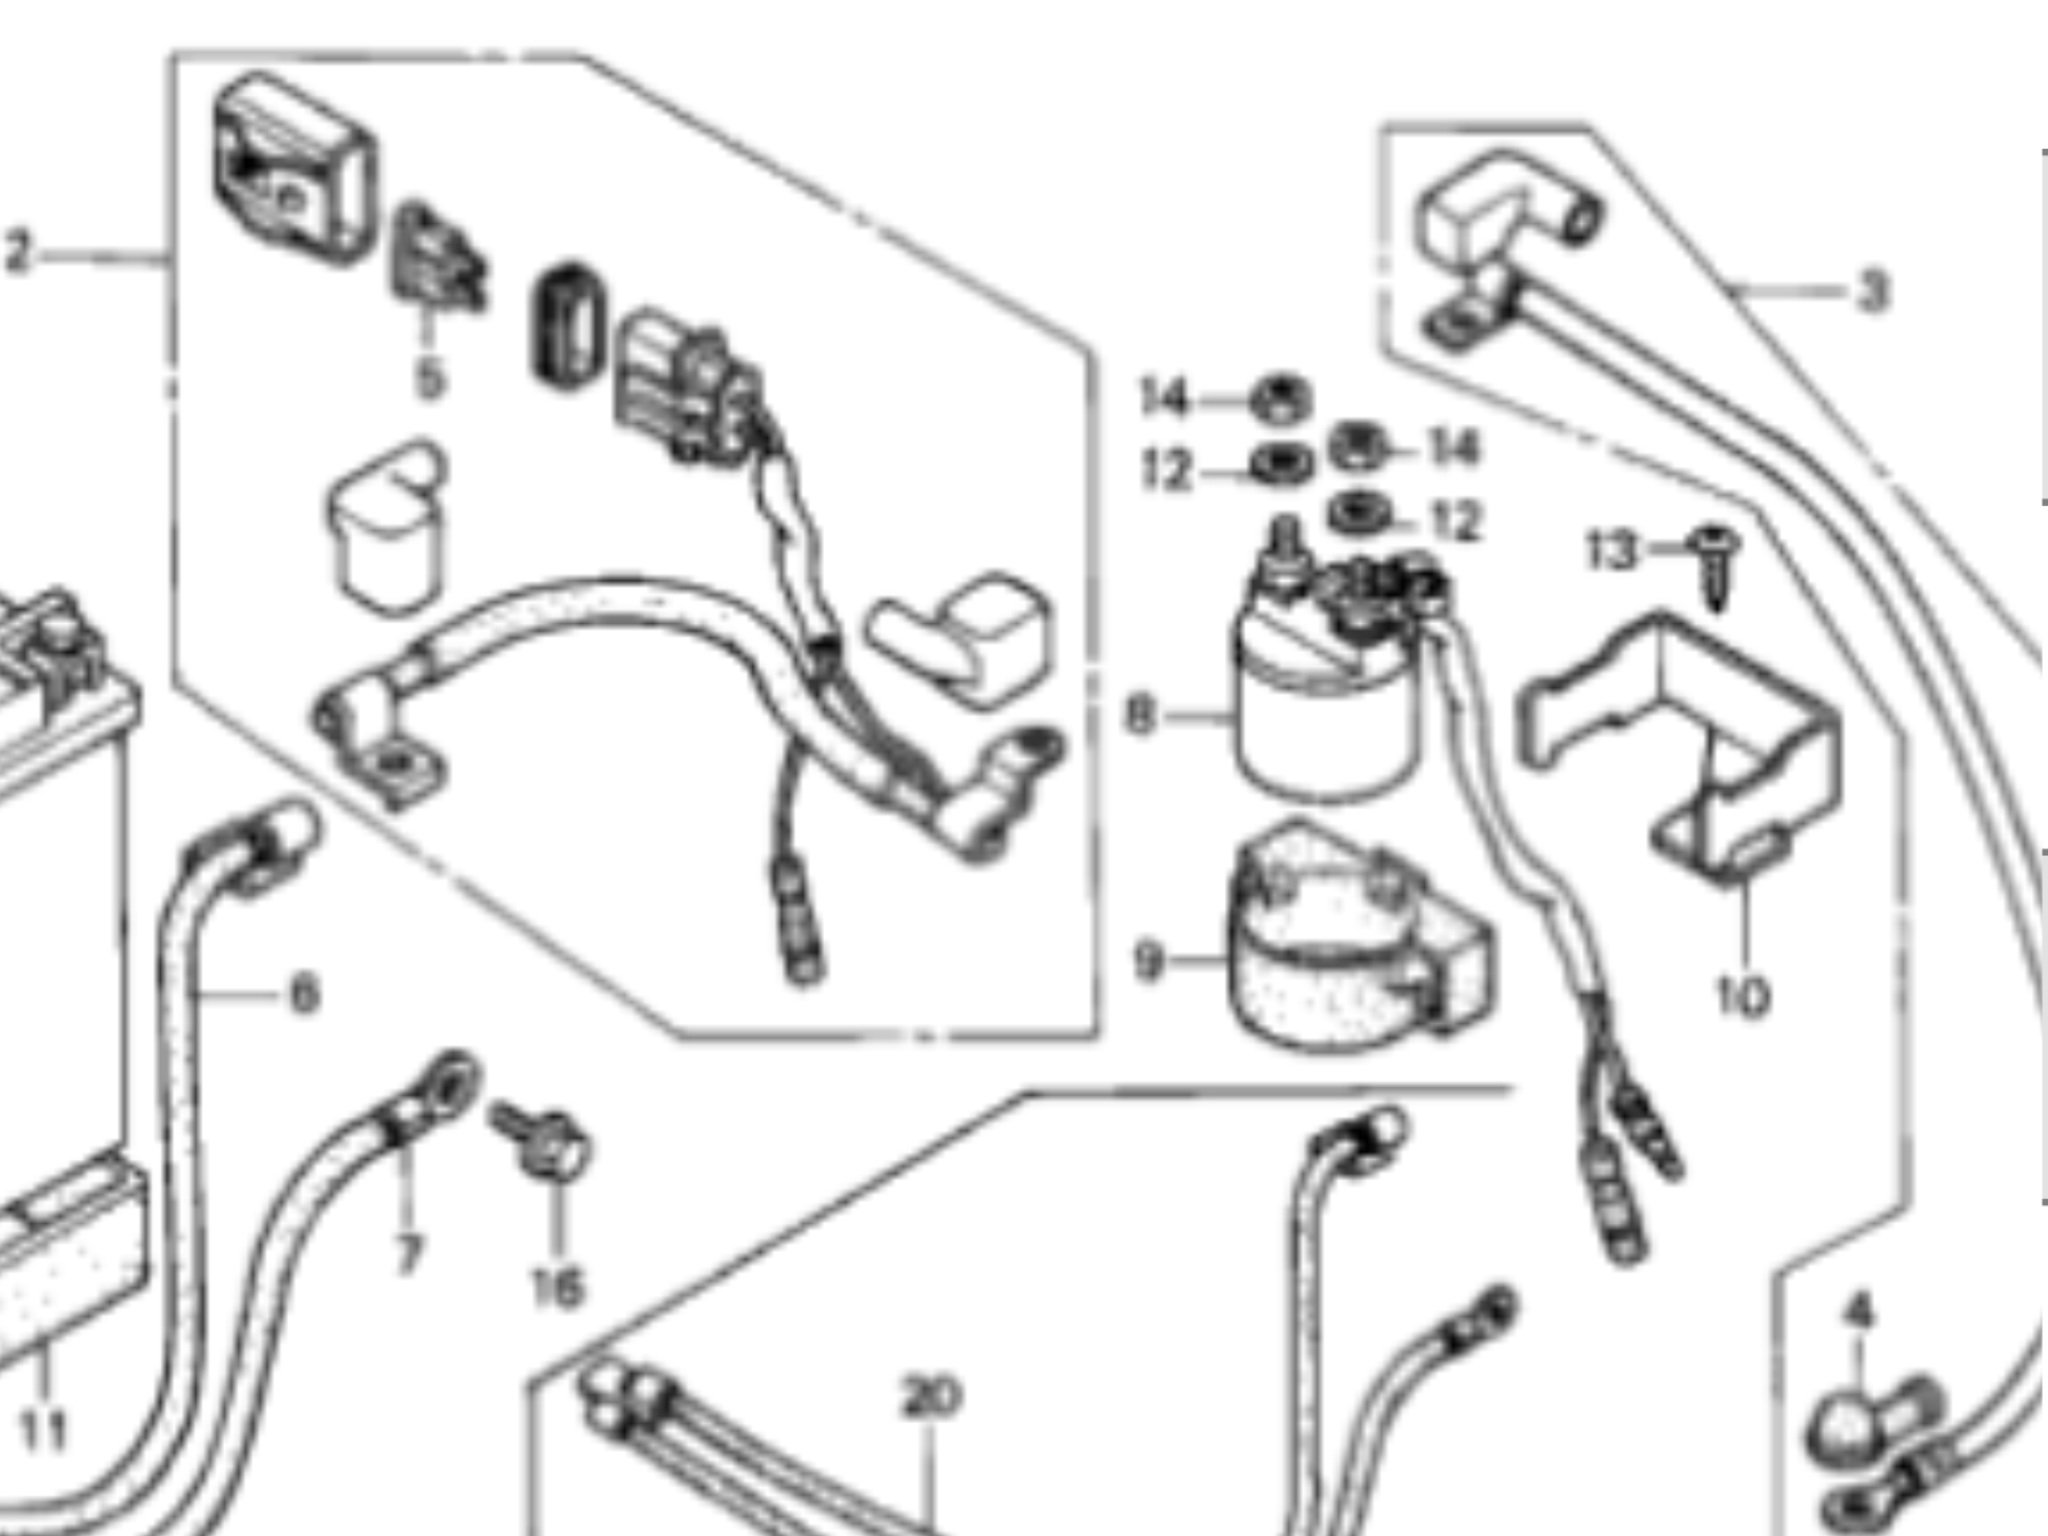 [GE_1339] Diagram Of Honda Atv Parts 2004 Trx250Tm A